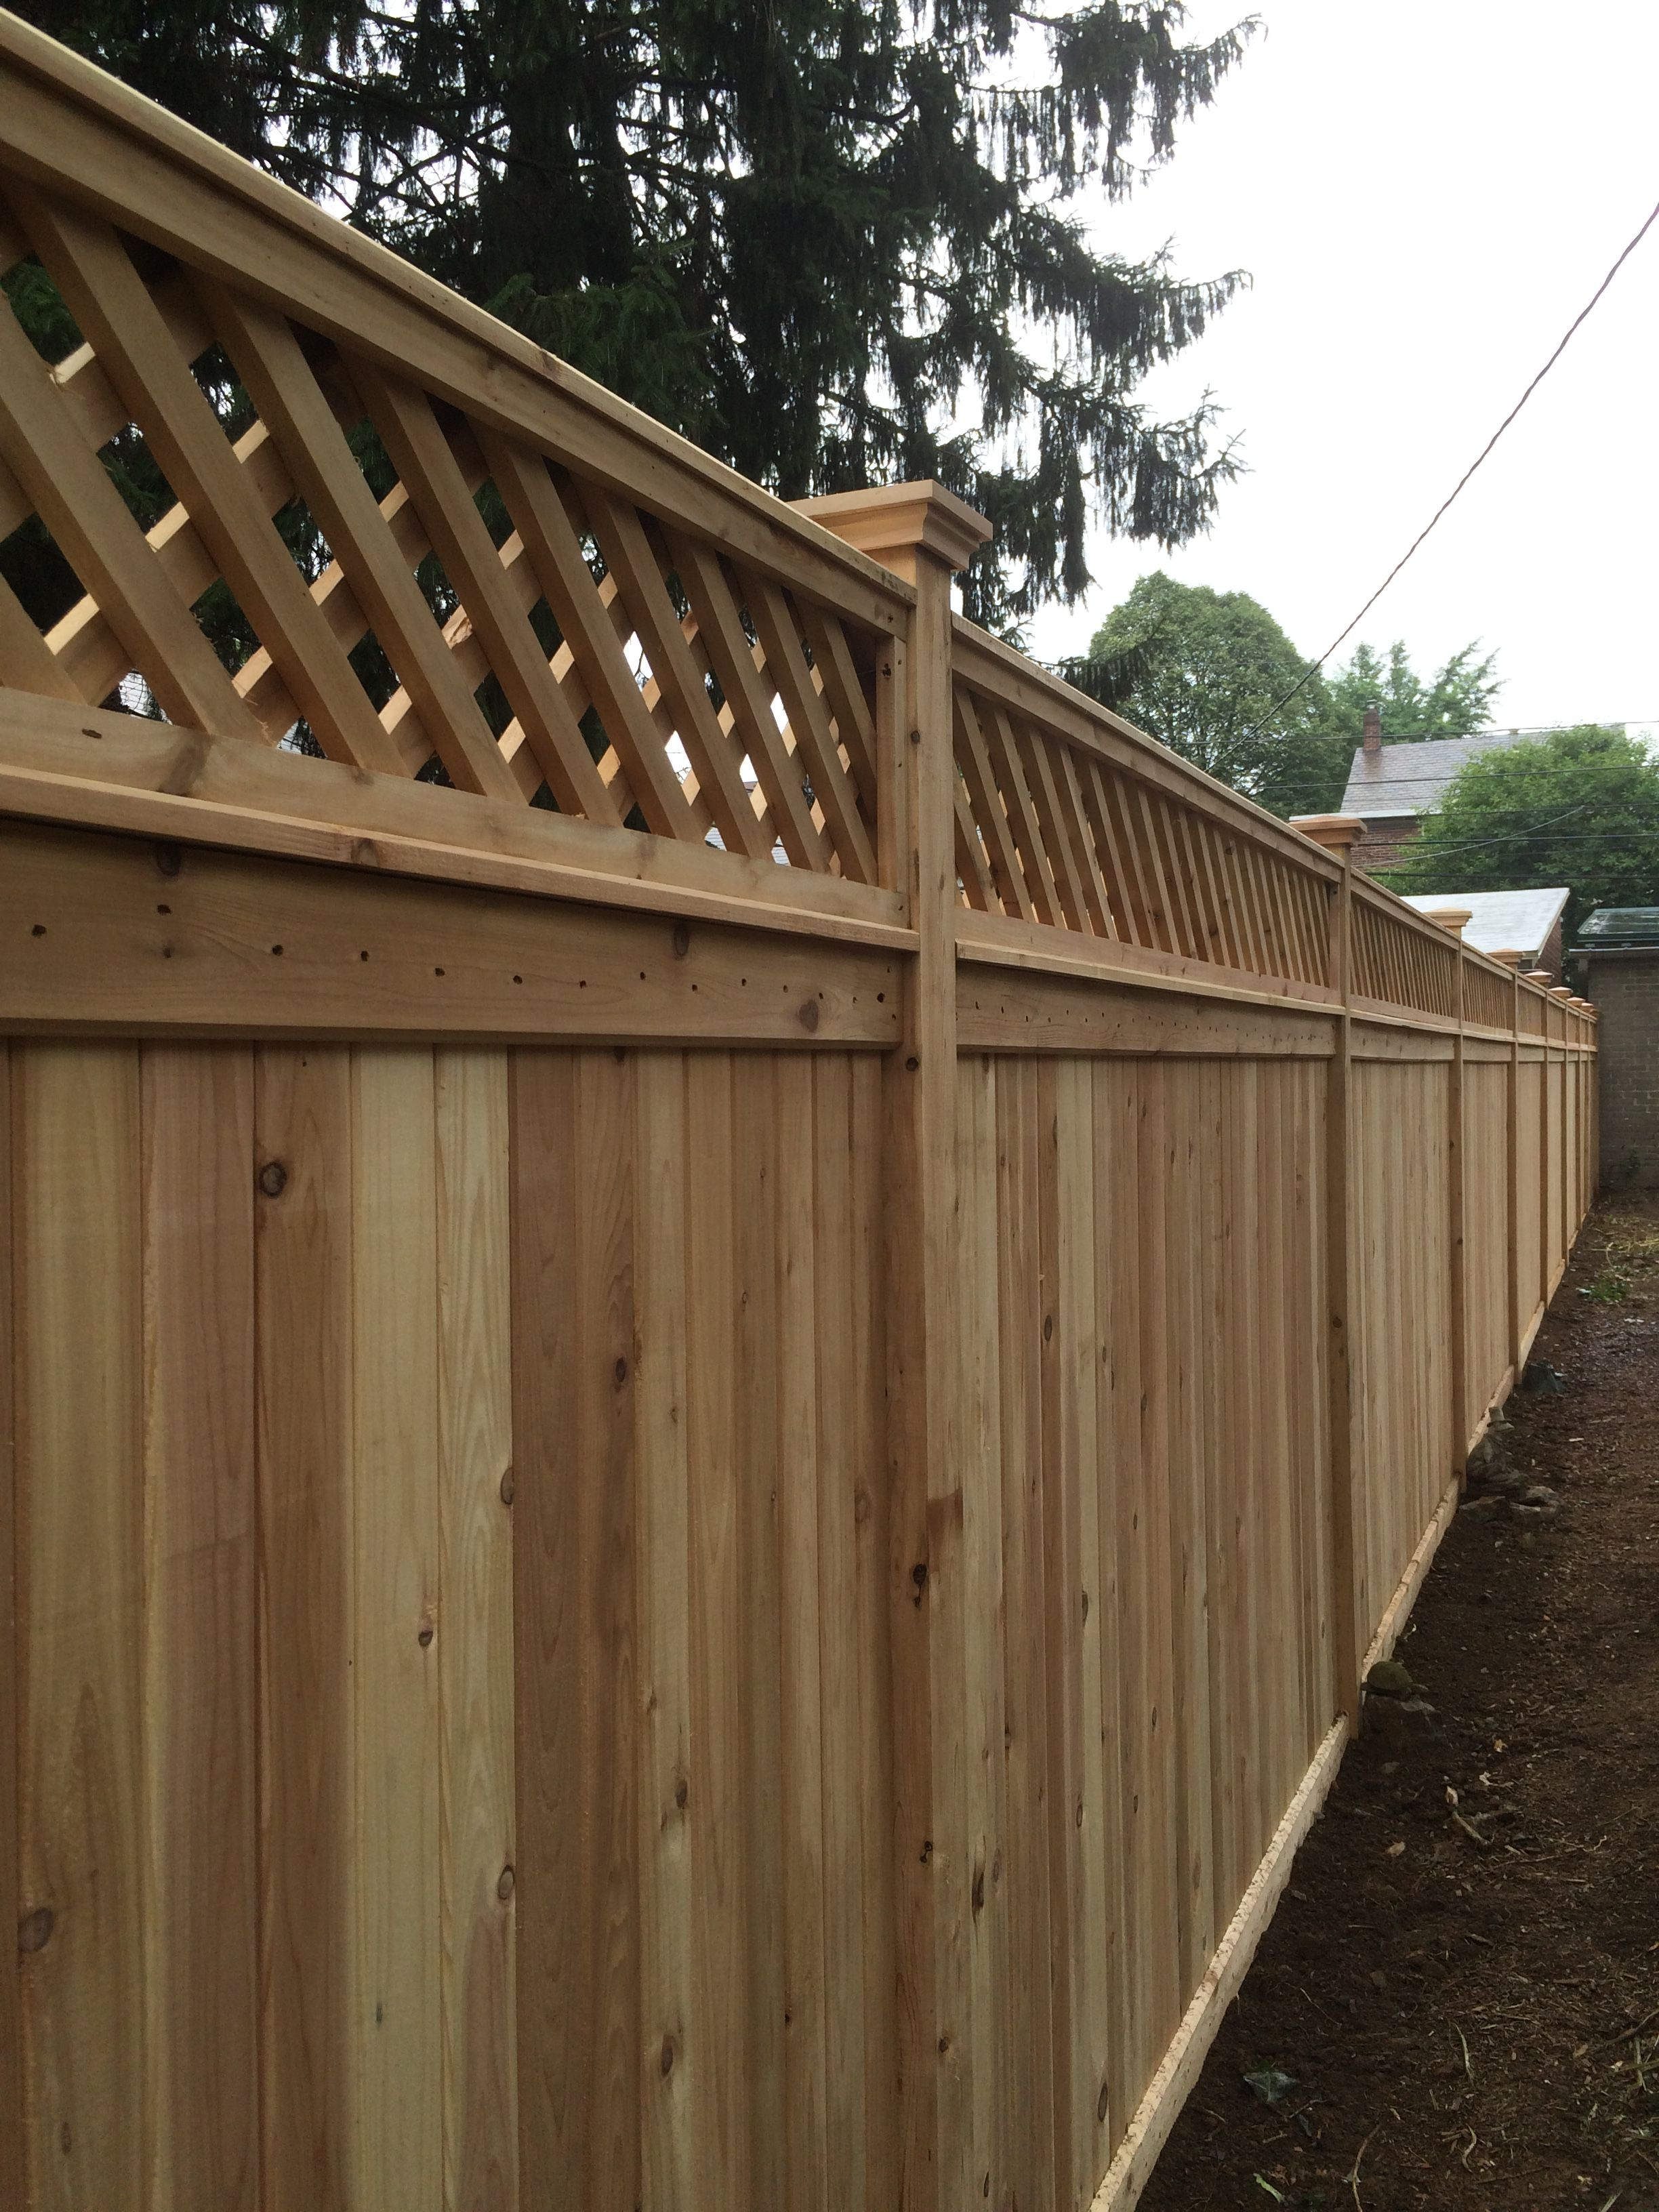 Red Cedar Privacy Fence With A Diagonal Lattice Topper Fence Design Privacy Fence Designs Good Neighbor Fence